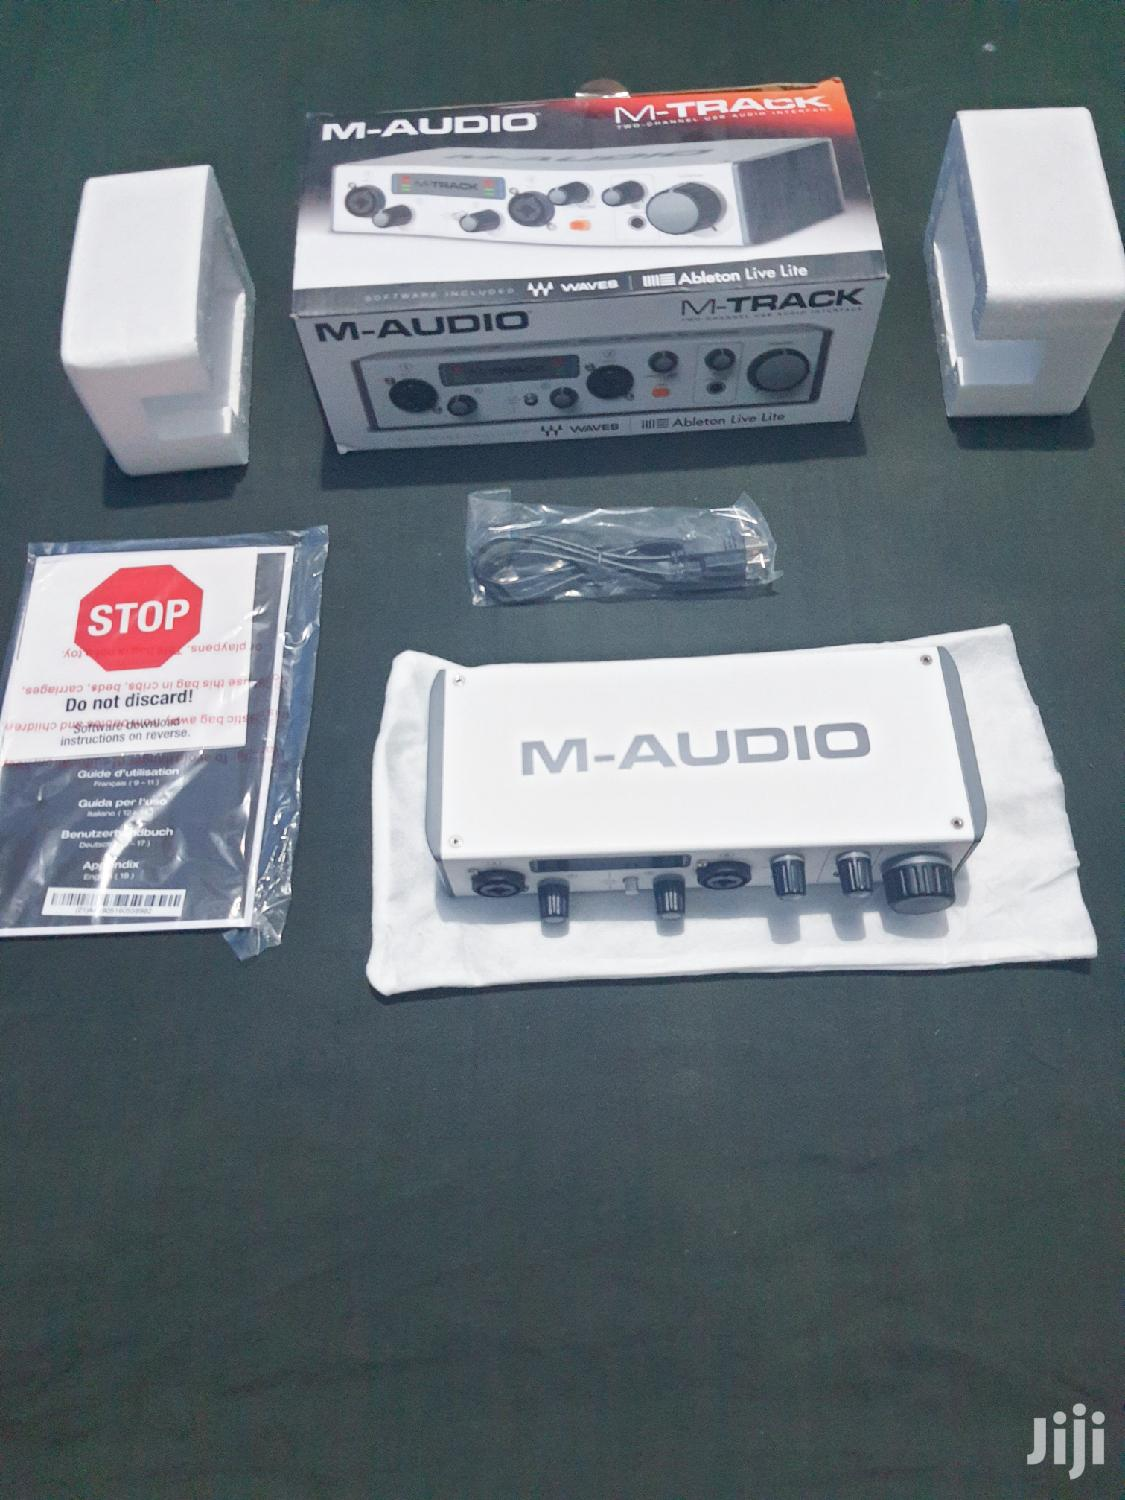 M-Audio M-Track MKII Audio Interface